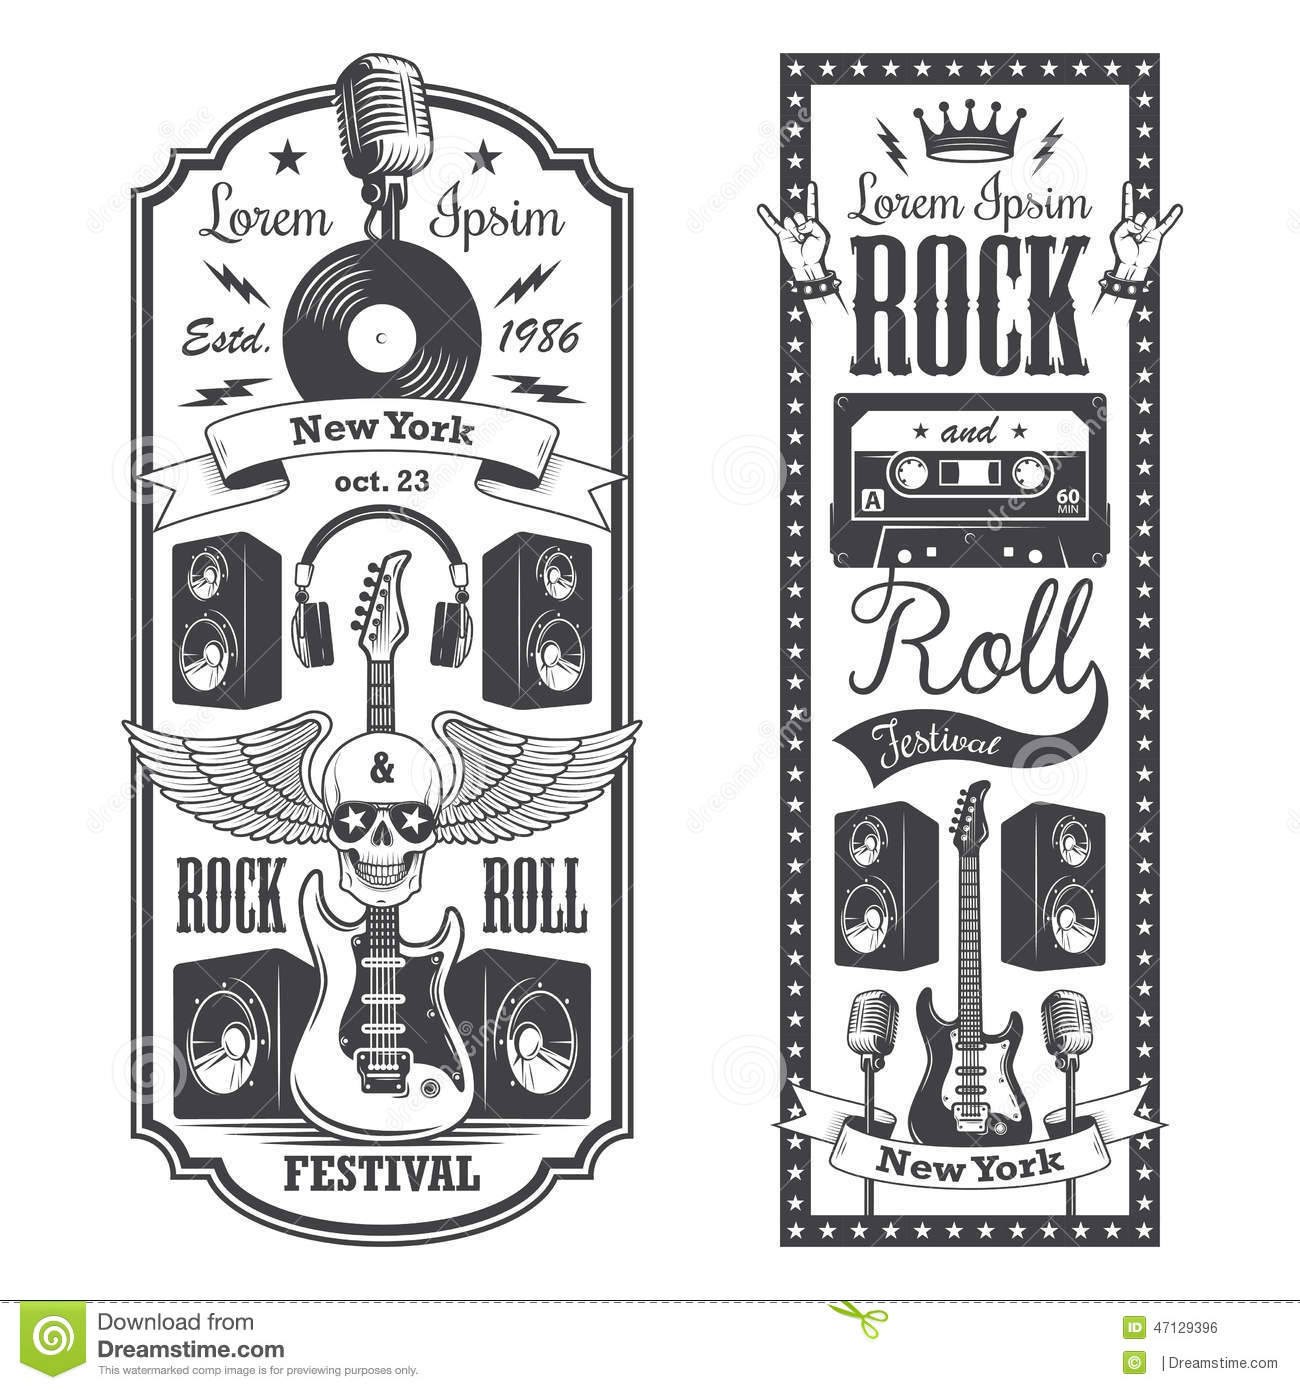 2 rock and roll music flayer covers stock vector. Black Bedroom Furniture Sets. Home Design Ideas